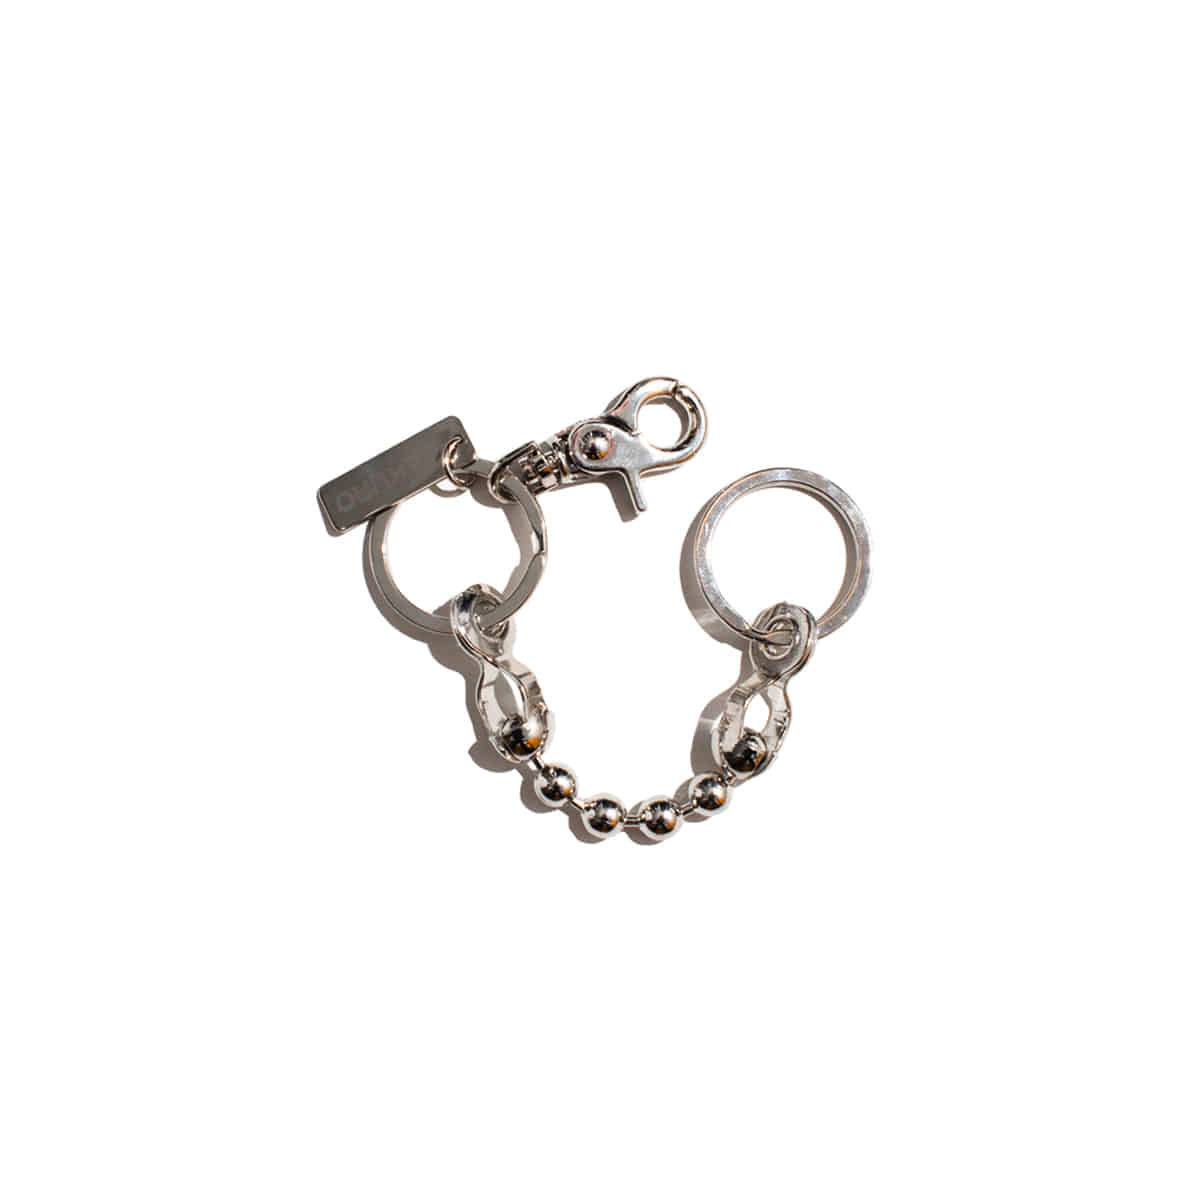 [GAKURO] BALL CHAIN KEY RING